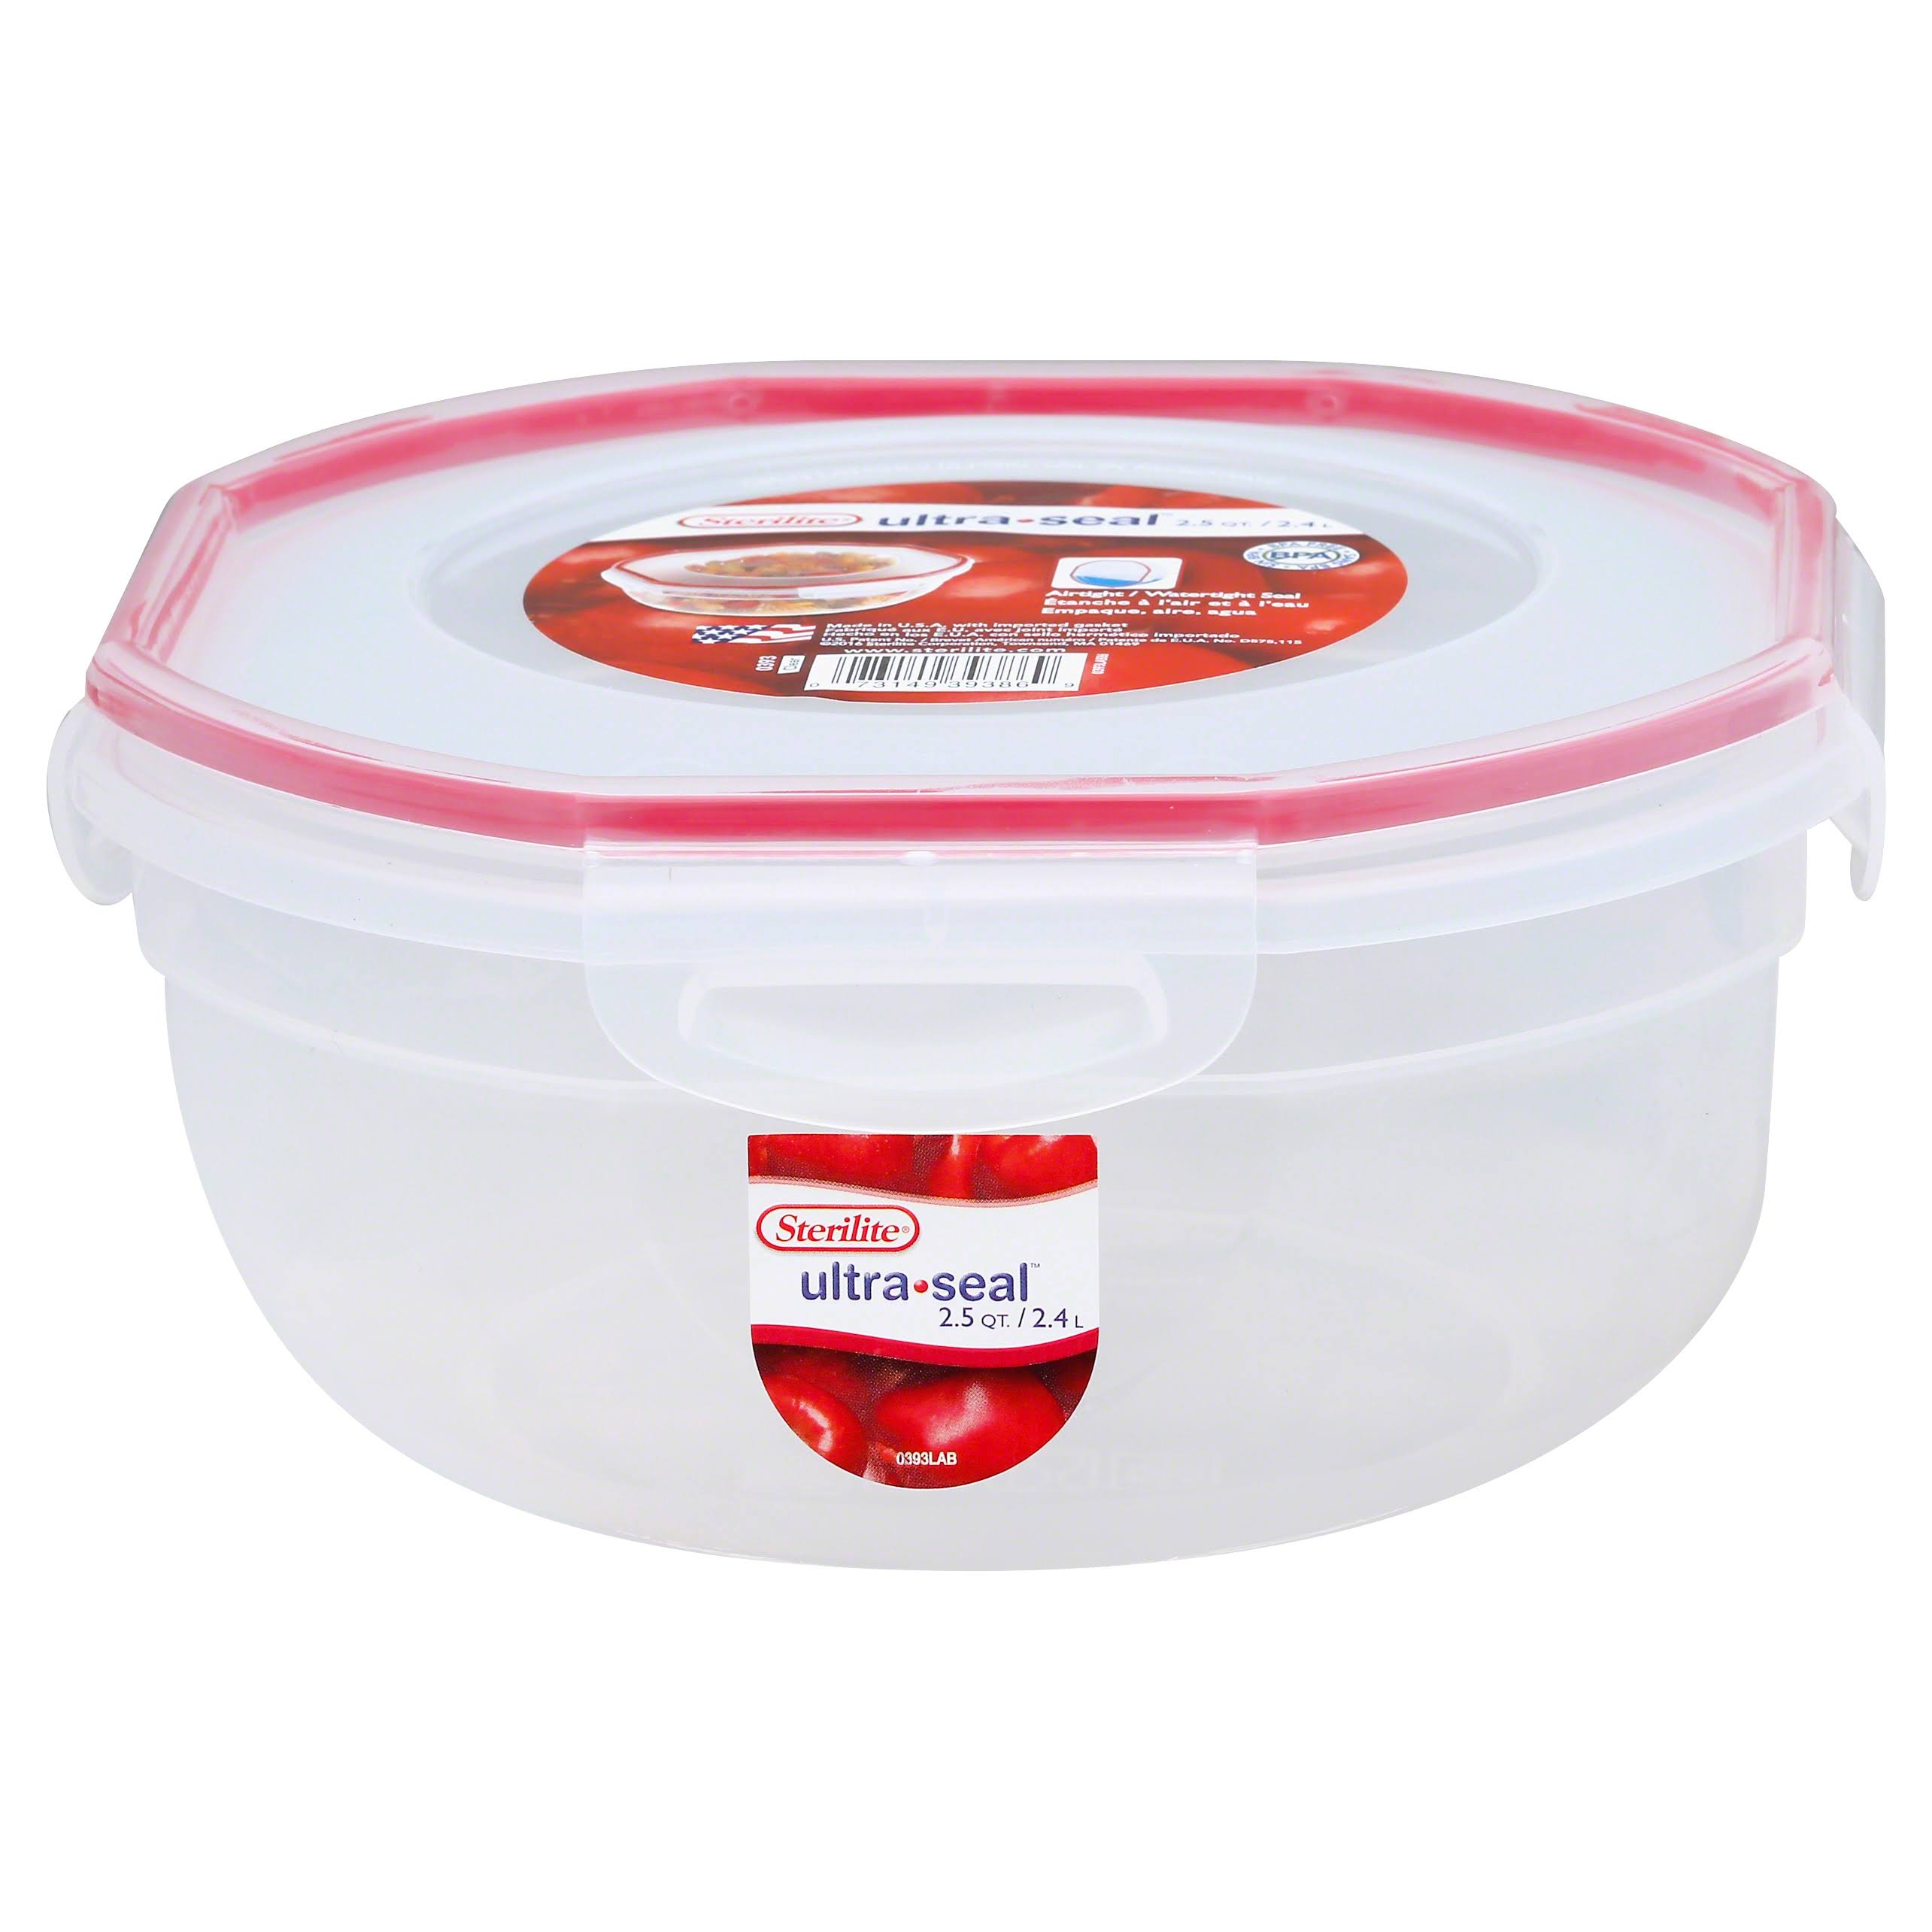 Sterilite Ultra Seal Food Storage Bowl - 2.5qt